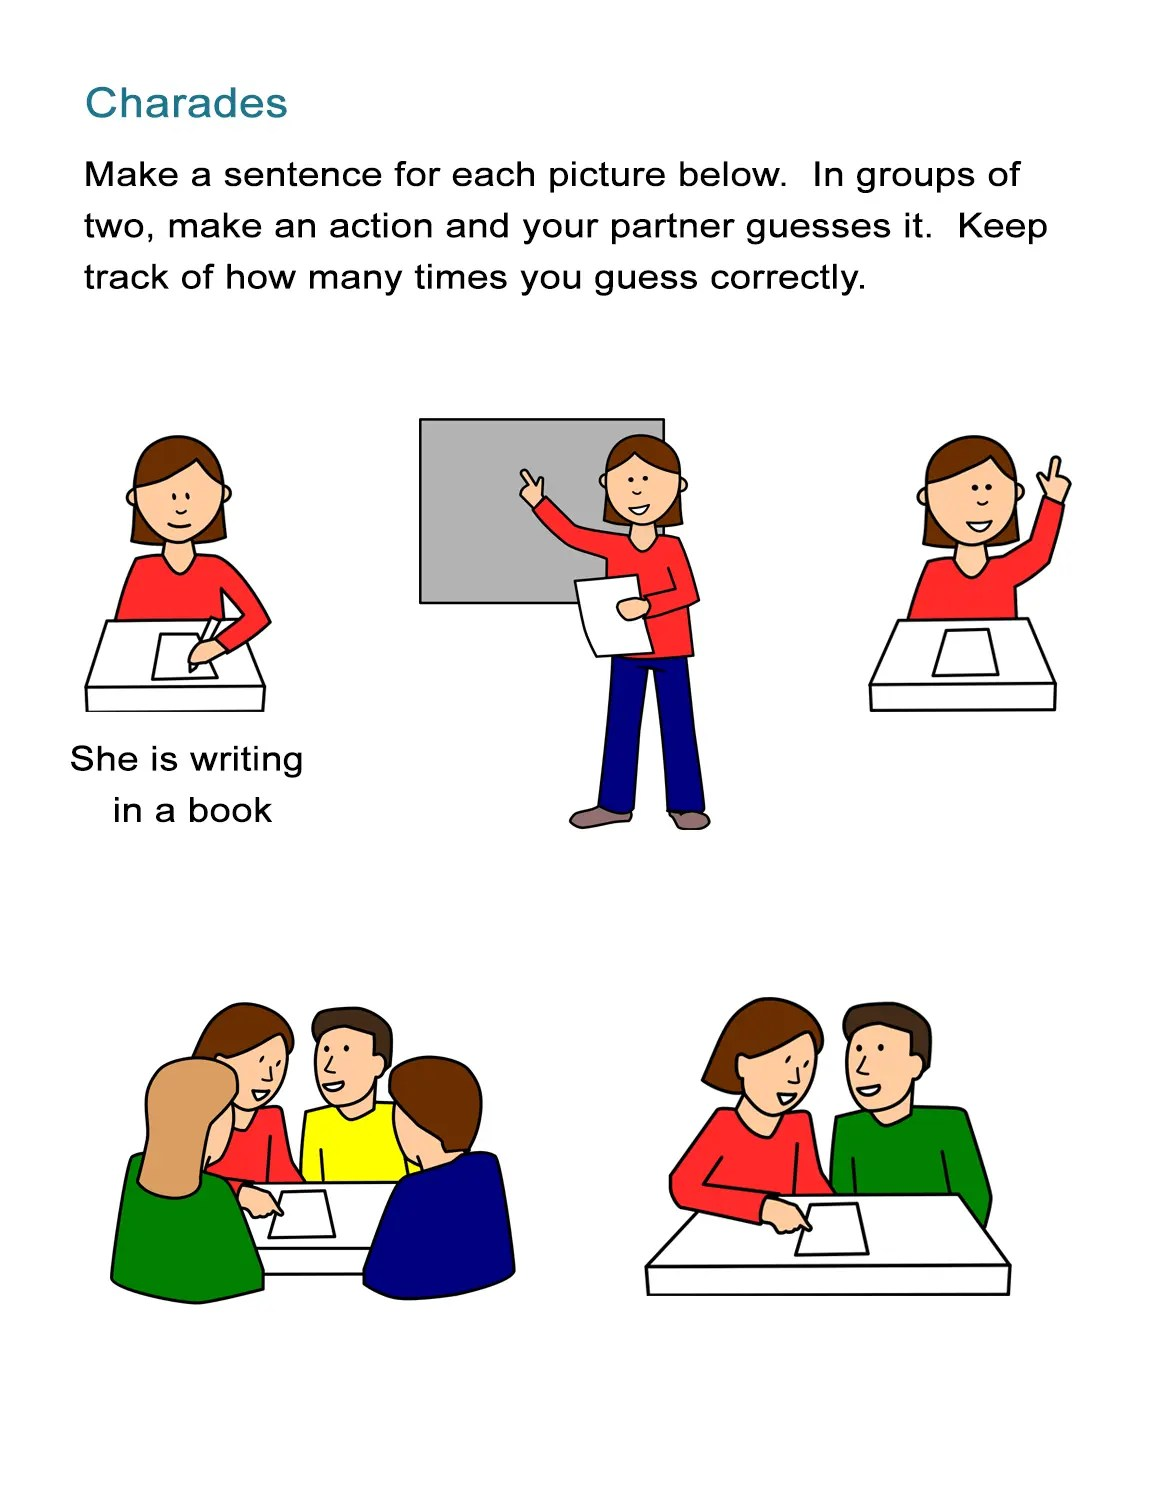 Action Verbs Charades For Kids How To Play Charades